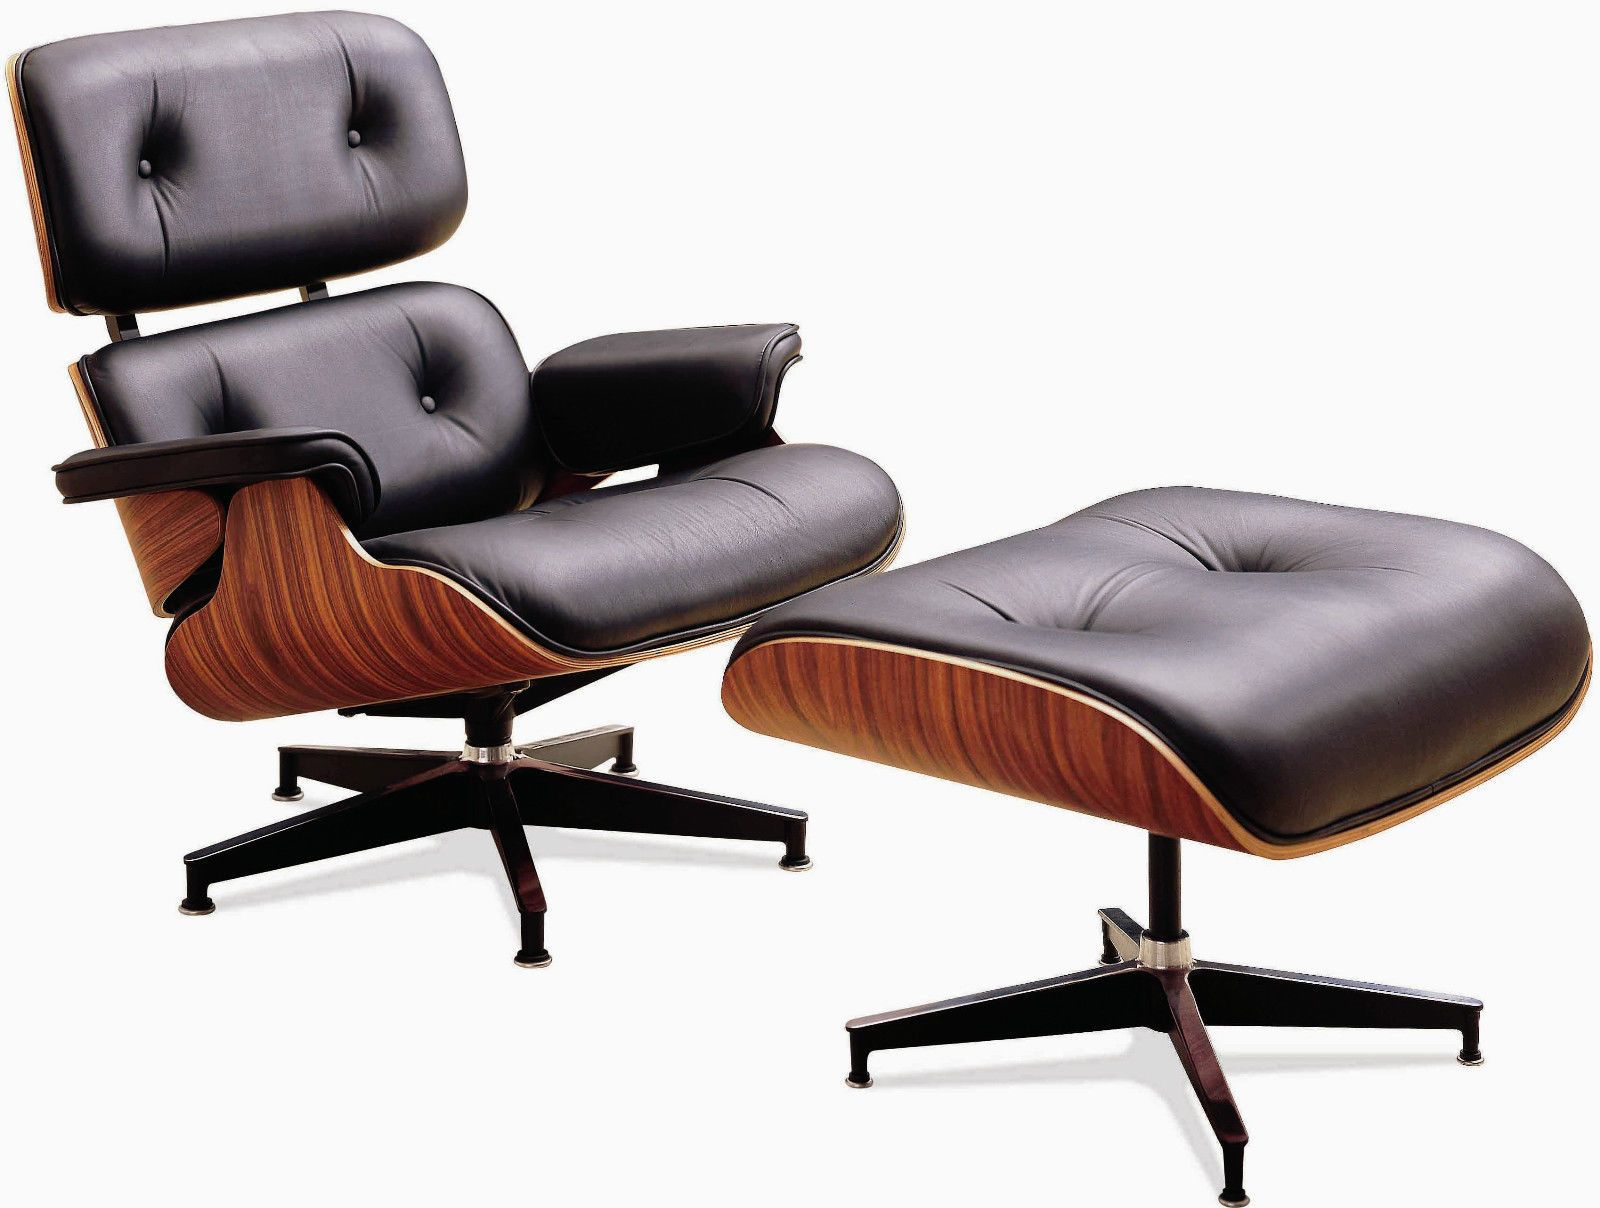 Eames Chair Replica Ebay Charles Eames Lounge Chair And Ottoman Black White Brown